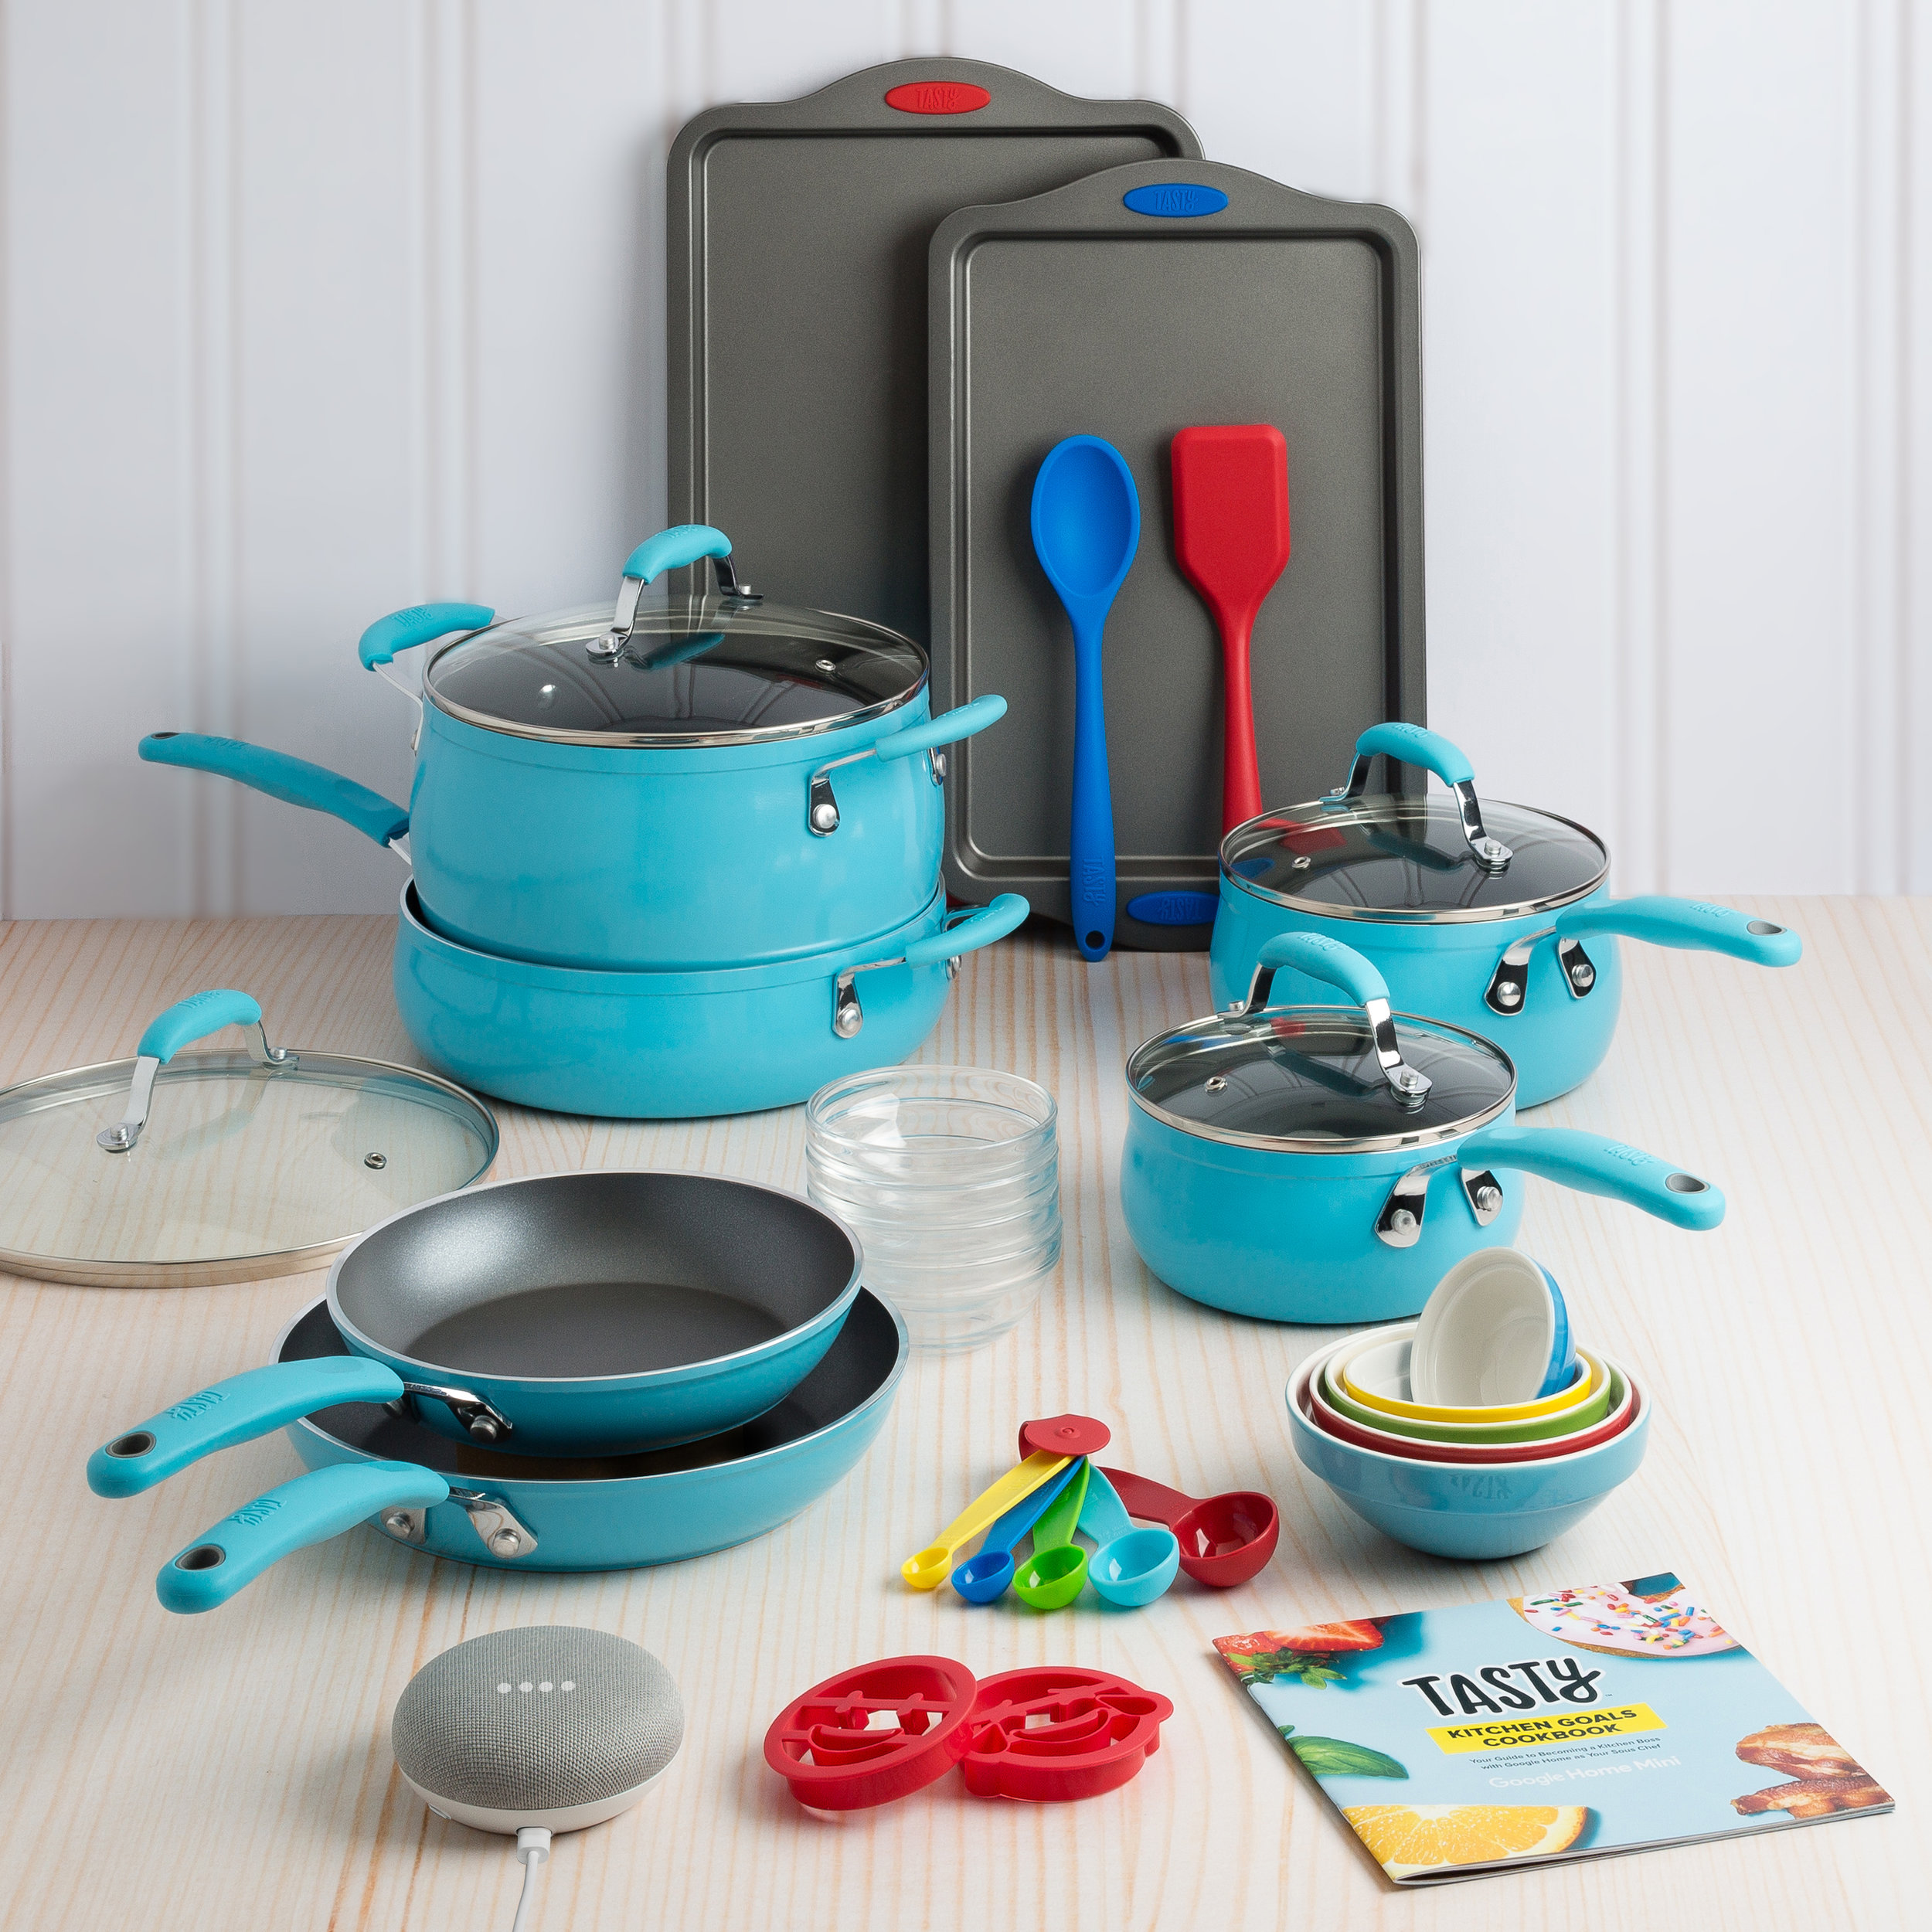 Tasty 30-Piece Cookware Set - W/Google Home Mini - This awesome 30 piece cookware set from Tasty will be on sale for $99 on BLACK FRIDAY!!! It come with a Google Home Mini, and seriously includes everything you need to stock your kitchen! It has your frying pans and sauce pans, 4 different pots with lids, cookie sheets, mixing bowls, measuring spoons, prep bowls, utensils, and even some emoji cookie cutters! Plus, you'll get a Tasty recipe booklet as well.It comes in 3 great colors, blue, red, and copper. The Google Home Mini has Tasty's full recipe book, so you can easily get any recipe you want through Google's smart commands. Then Google Home Mini can tell you step-by-step what to do as you go! This is a perfect gift for newlyweds, people who have just moved into a new home, or who just want a brand new kitchen set. Don't miss out on this awesome Black Friday Deal!